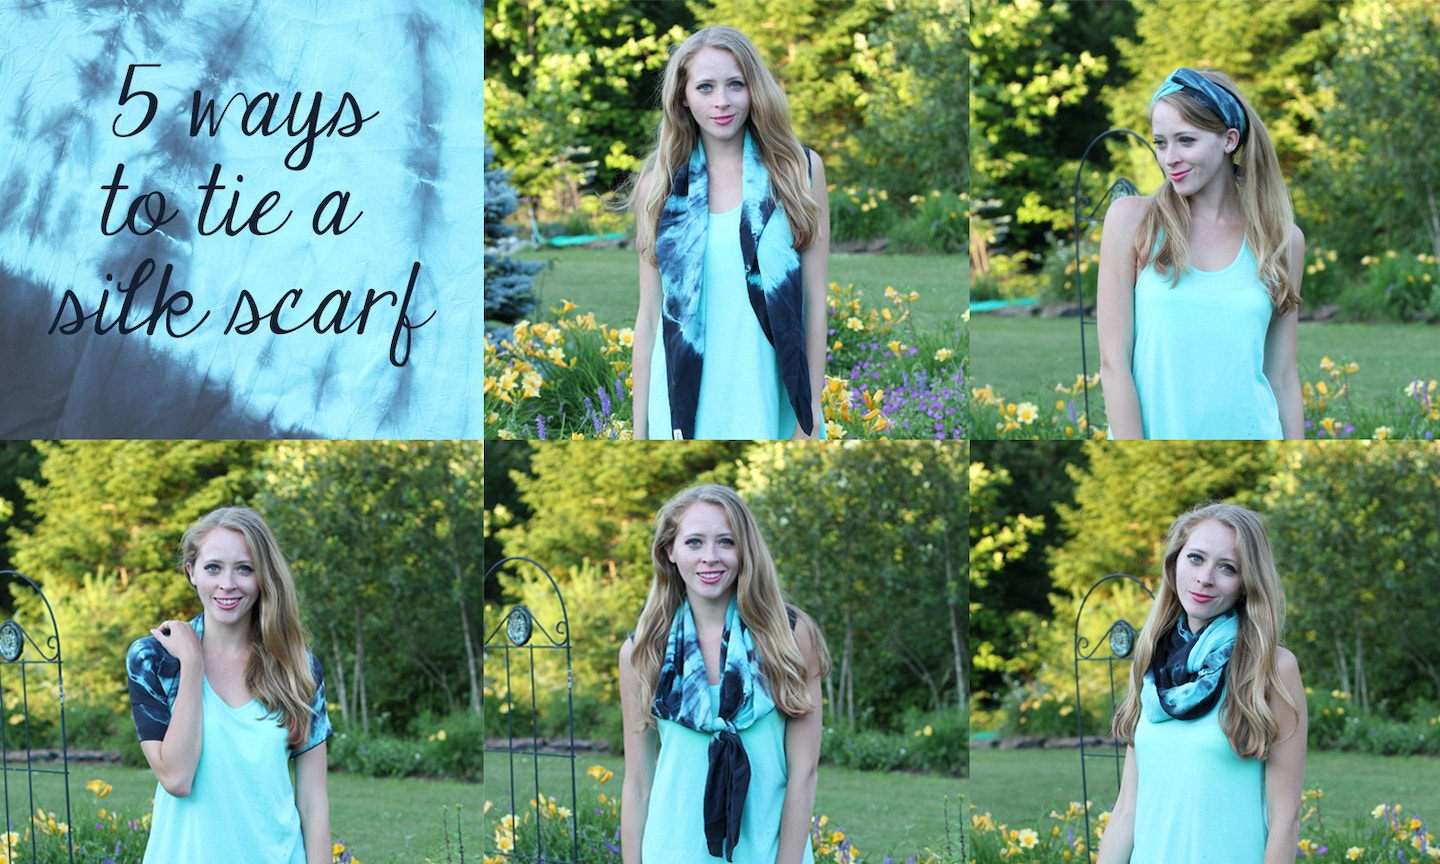 How to: 5 ways to tie a silk scarf